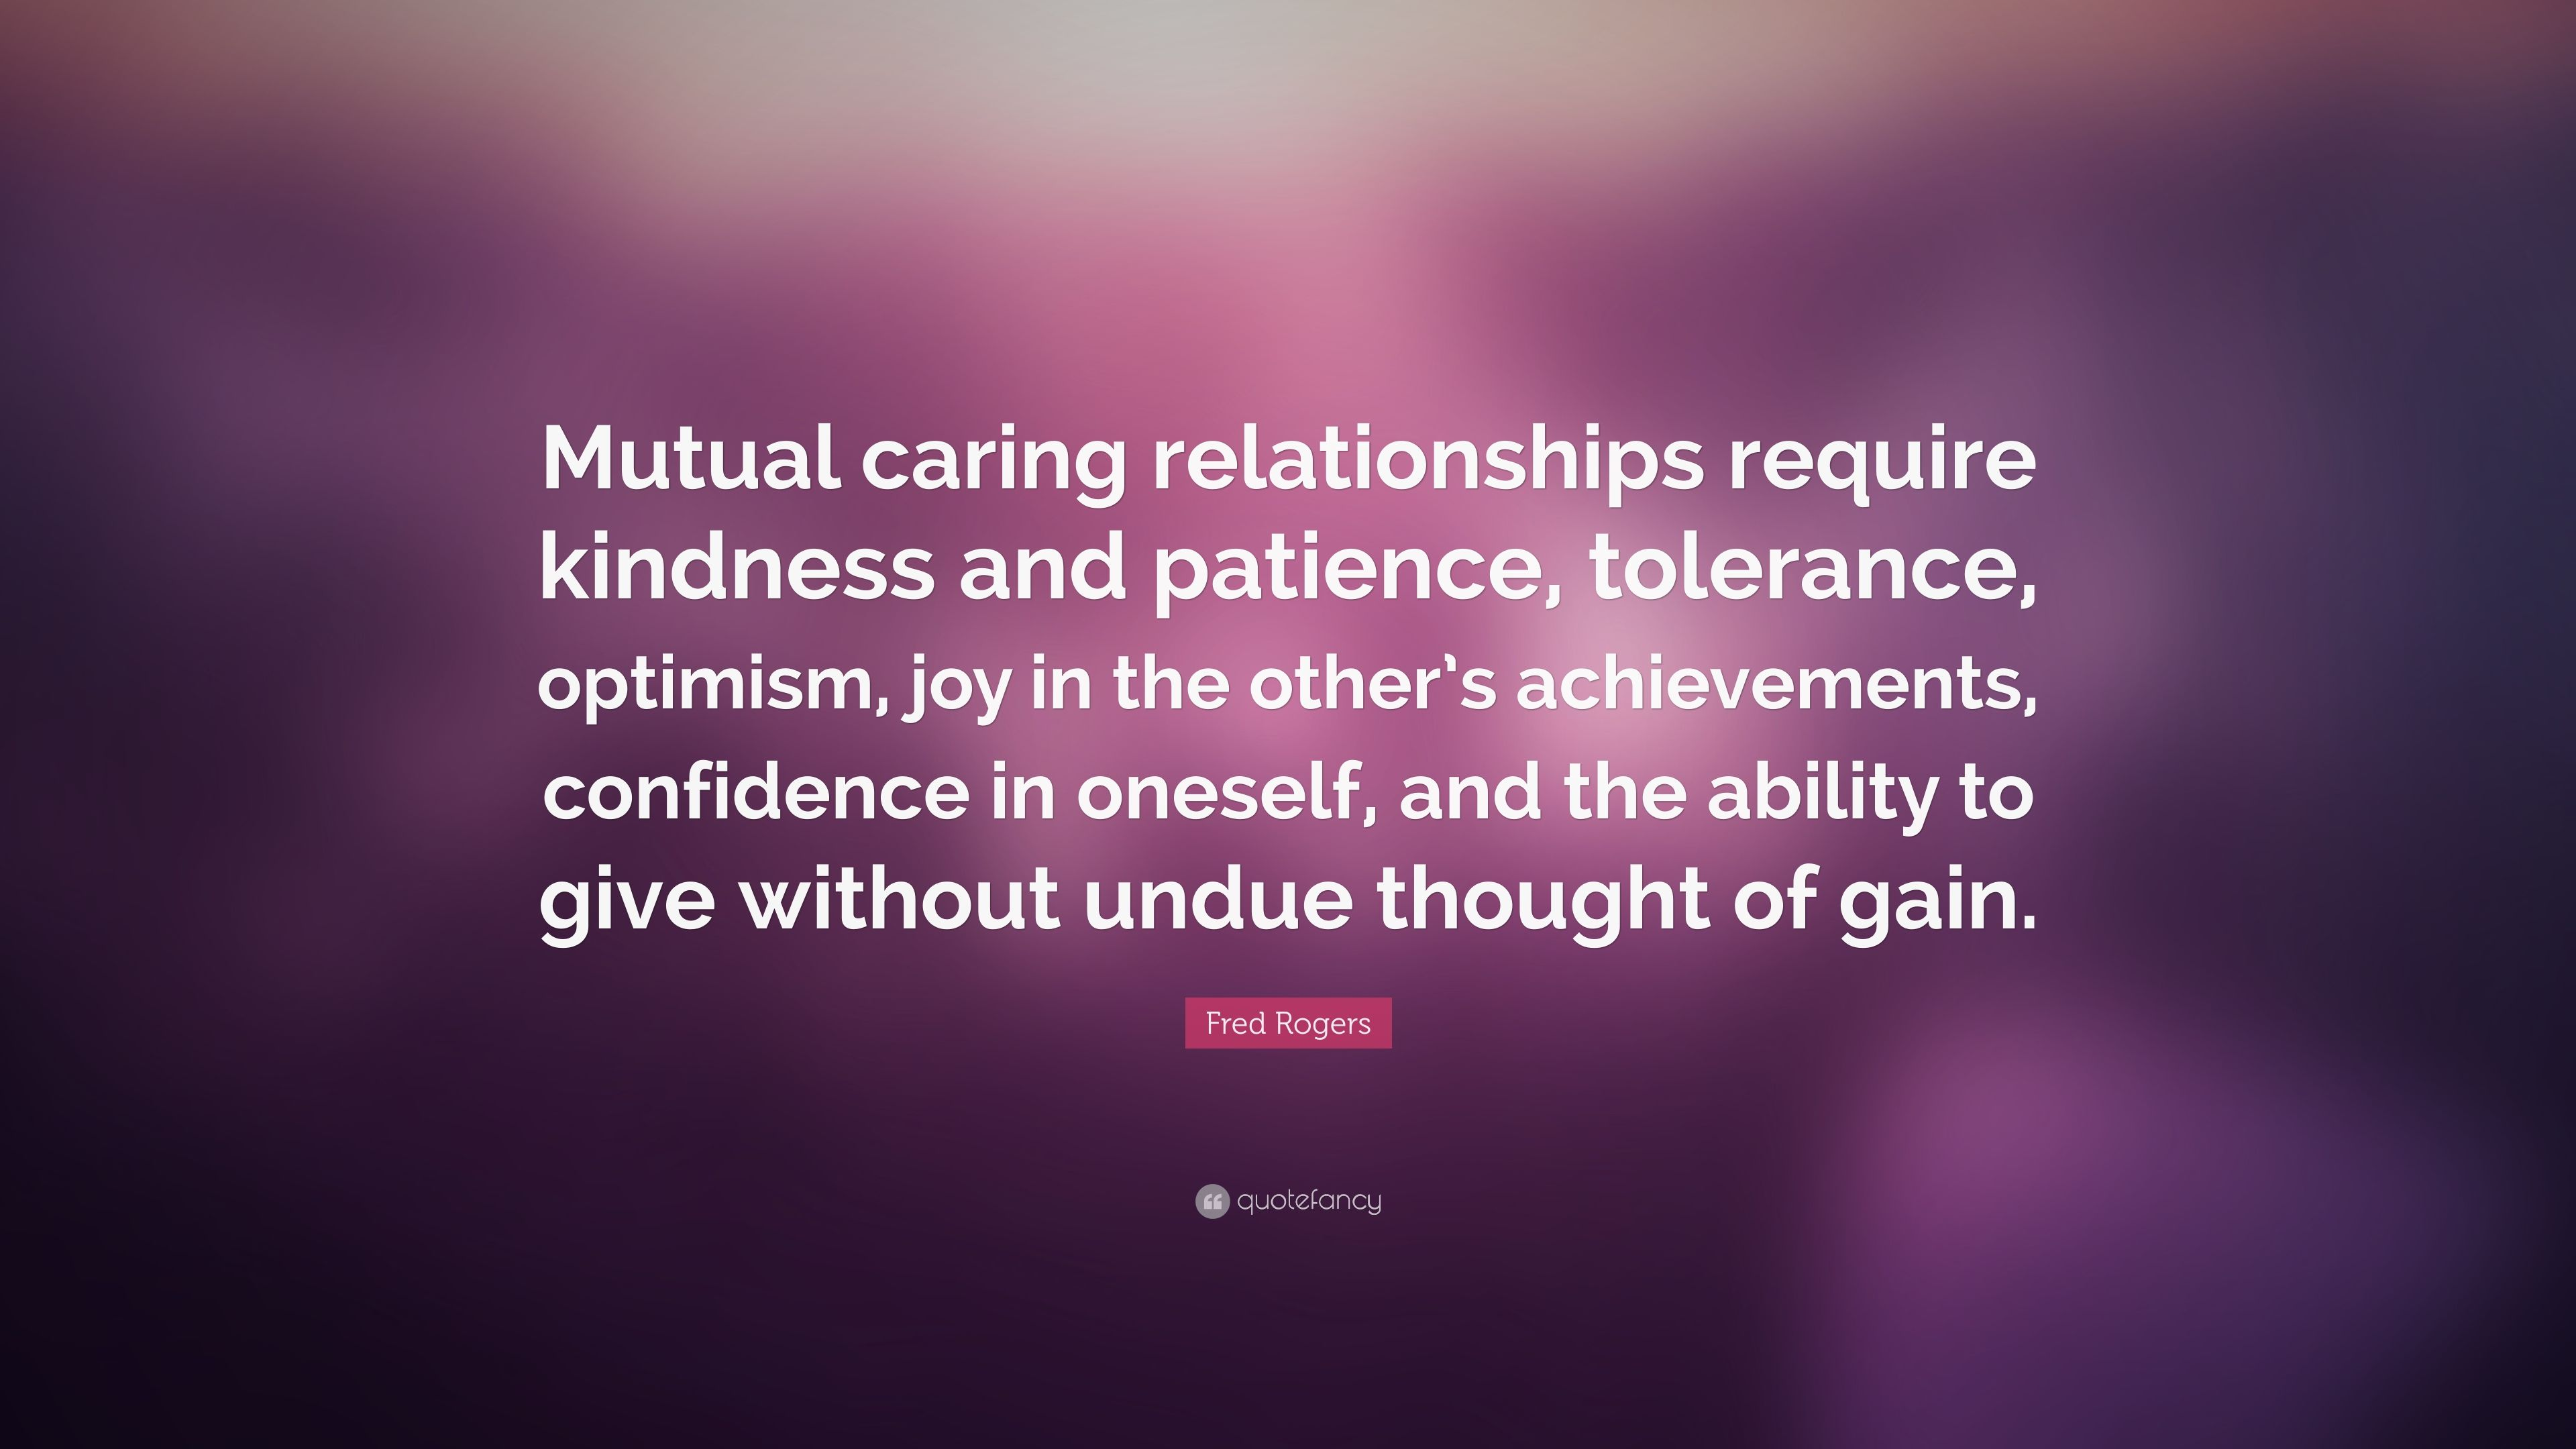 Fred Rogers Quote Mutual Caring Relationships Require Kindness And Patience Tolerance Optimism Joy In The Other S Achievements Confide 9 Wallpapers Quotefancy